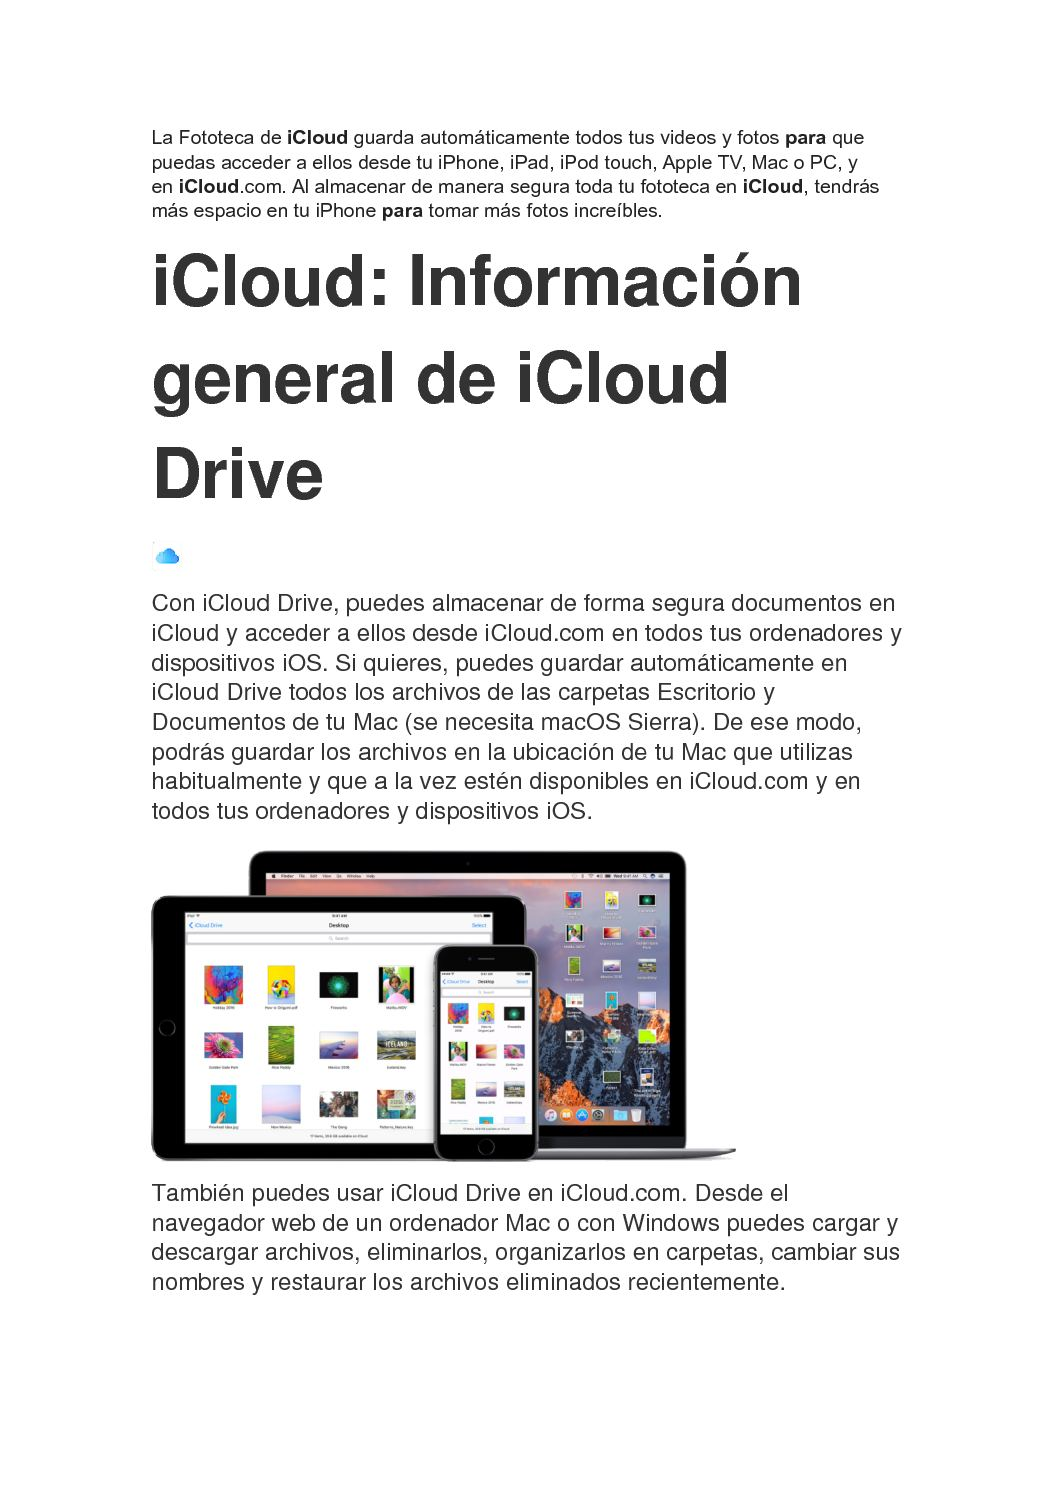 como descender solfa syllable informacion de icloud al iphone